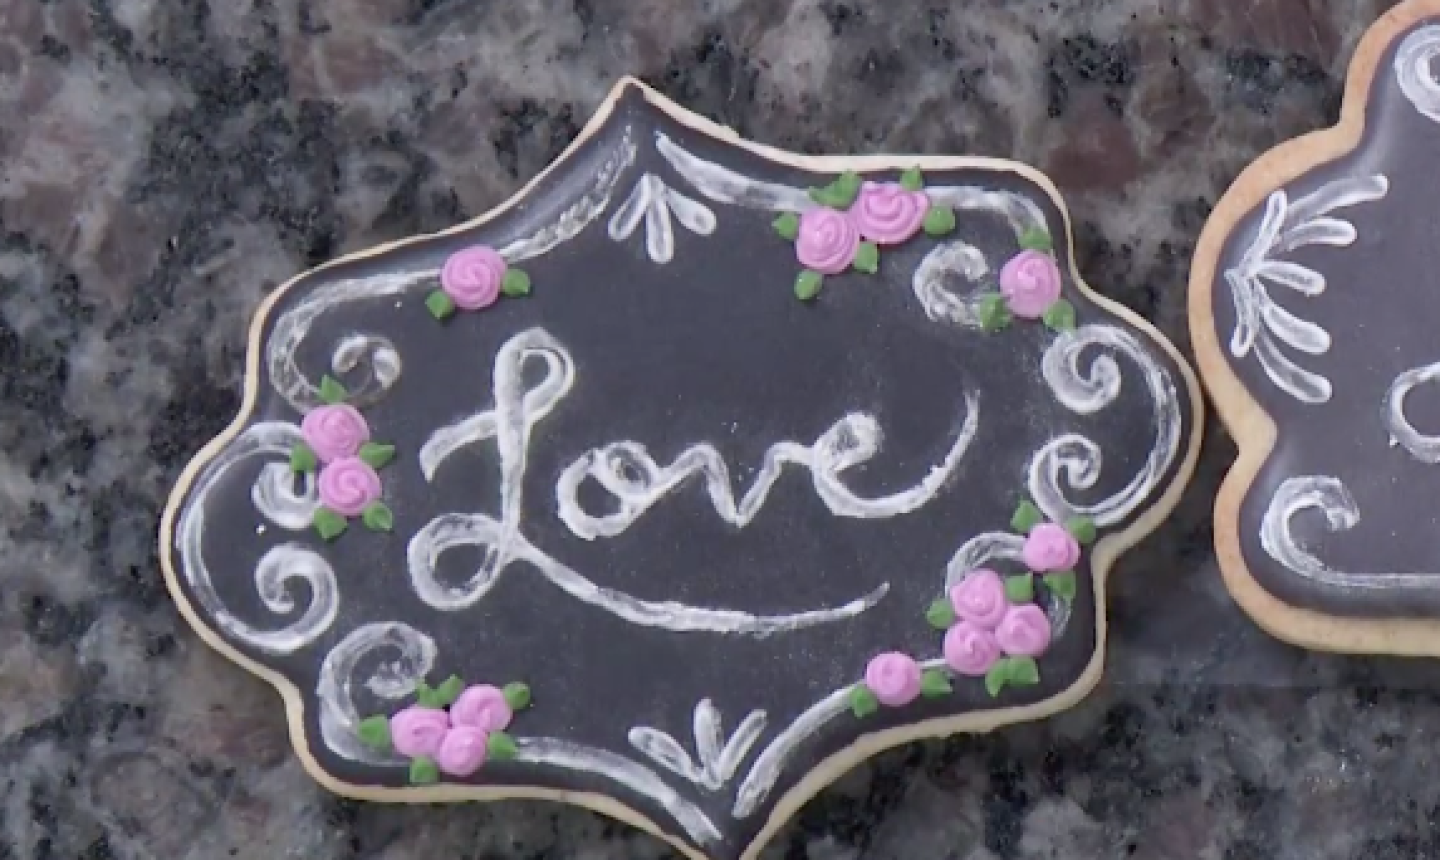 roses on chalkboard cookie